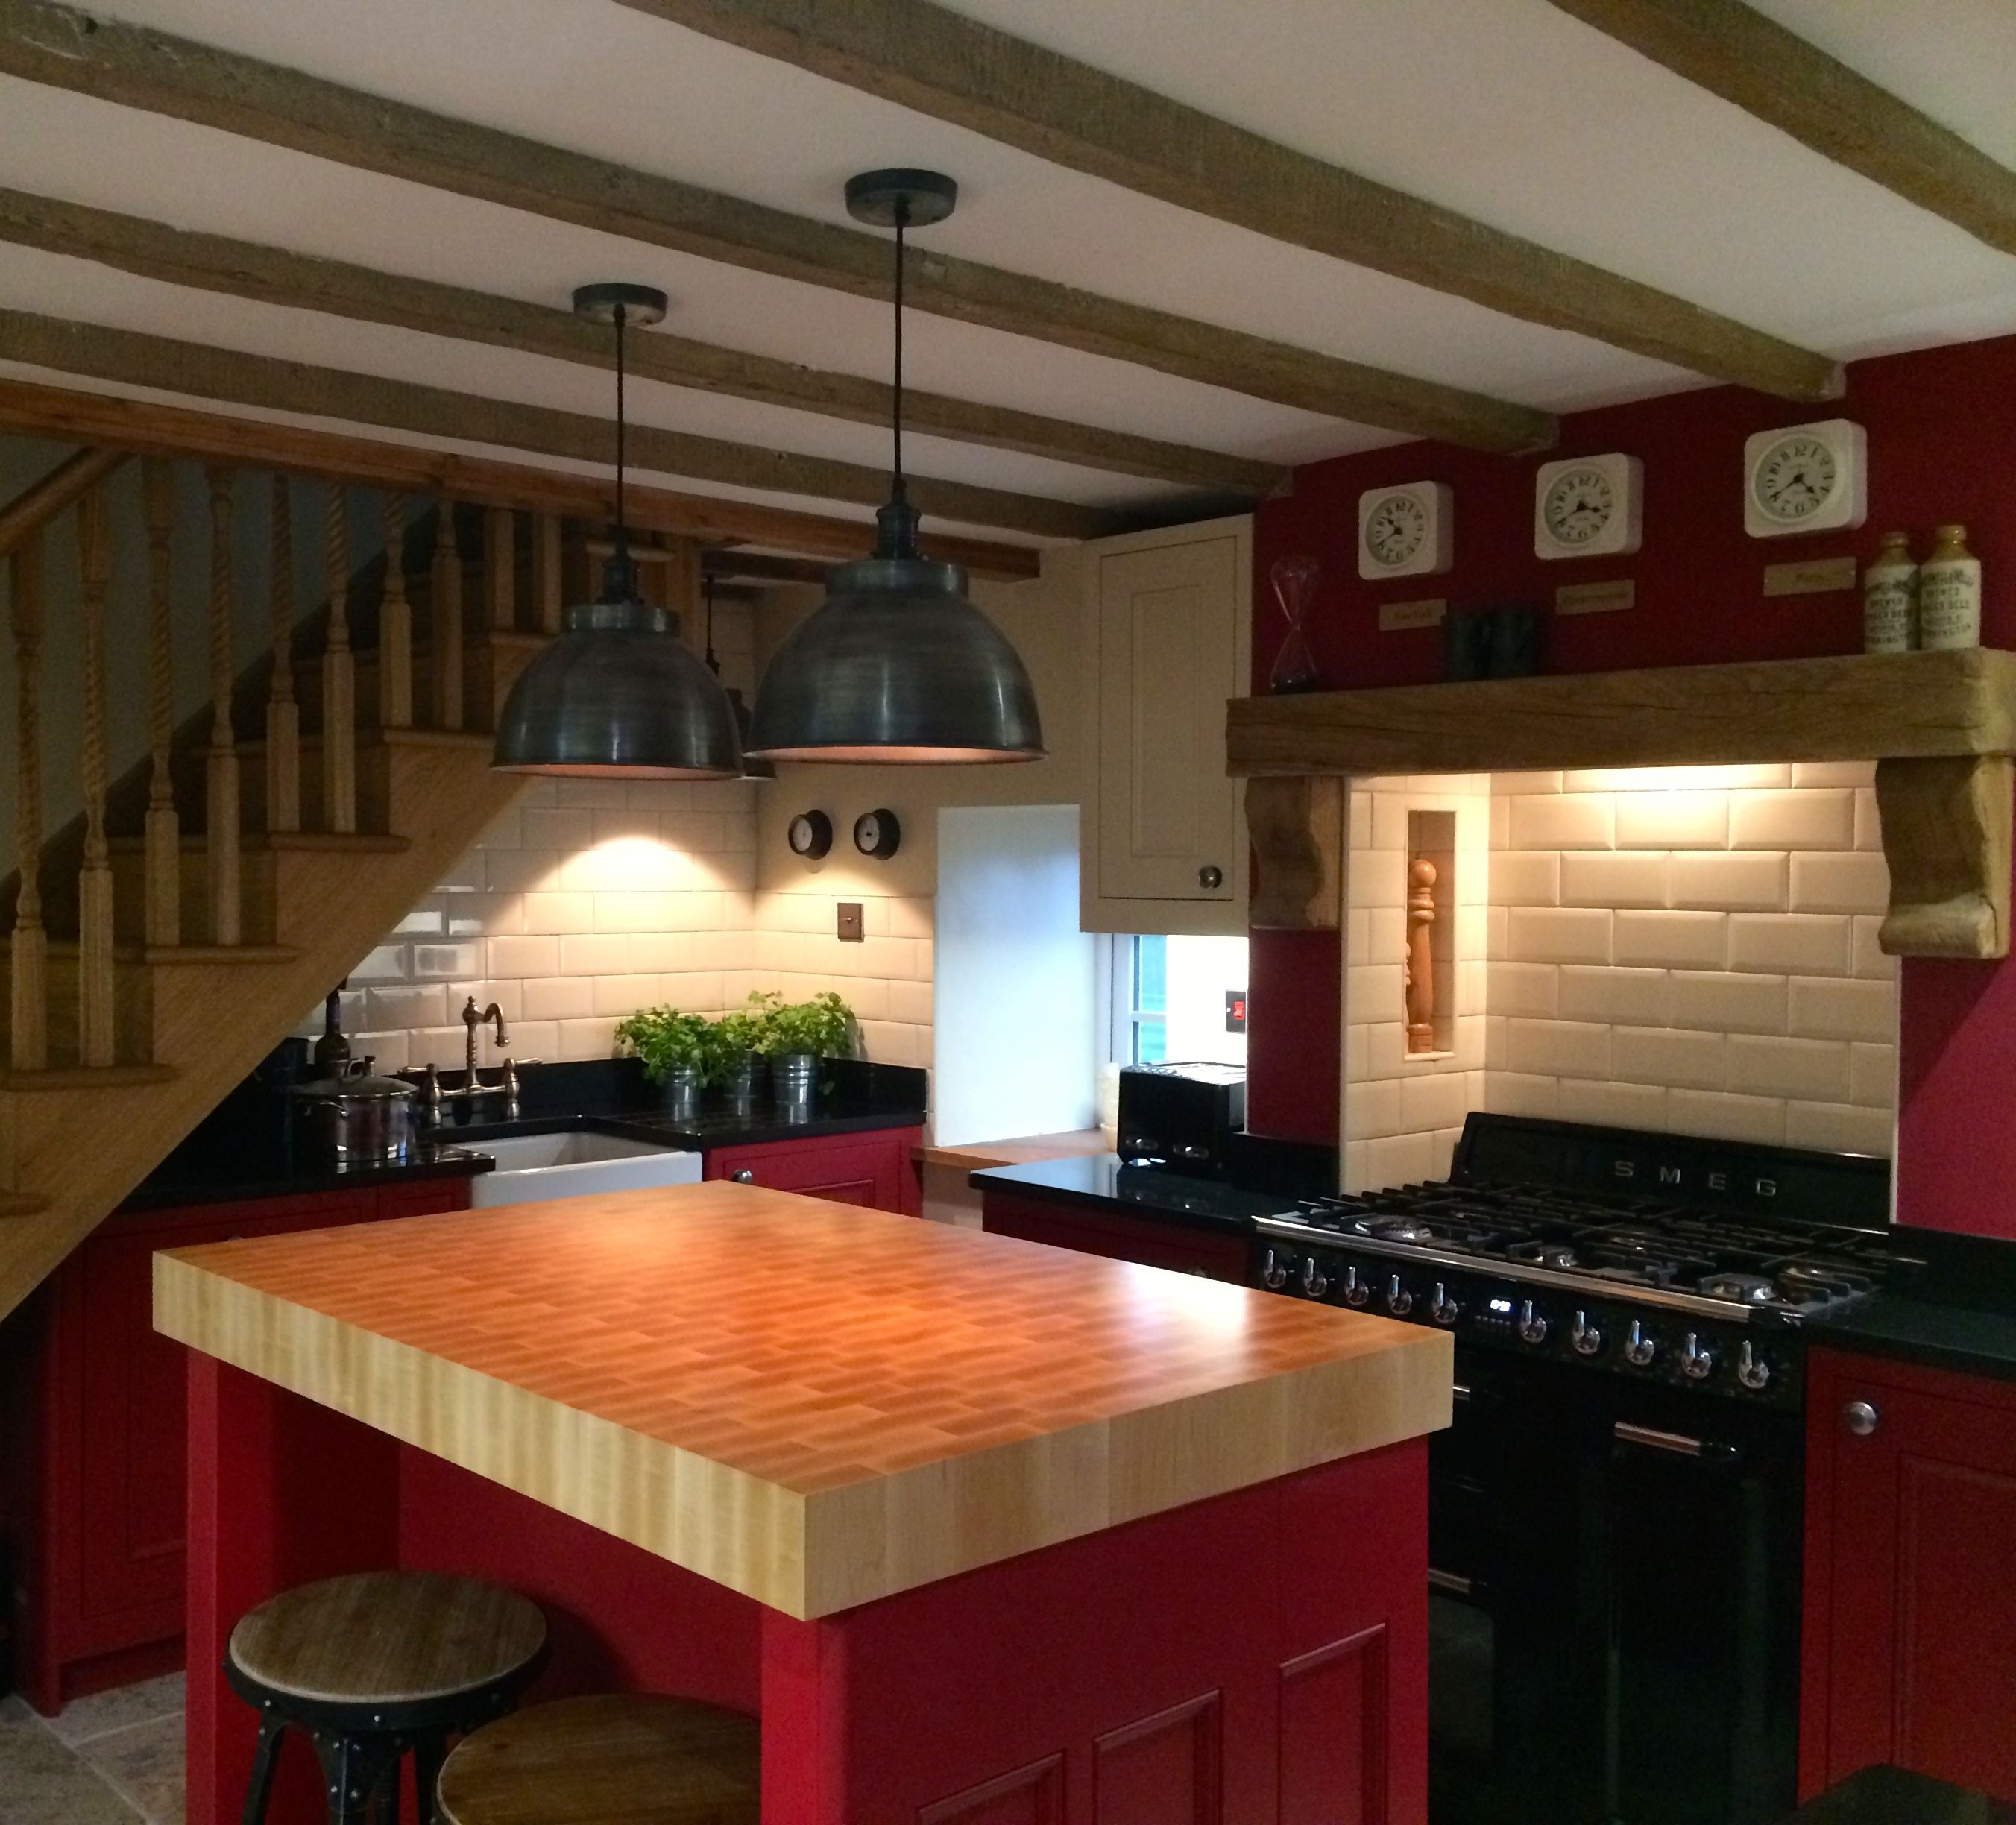 Shaker Style Kitchen In Farrow U0026 Ball Rectory Red And Ringwold Ground.  Featuring Recessed SMEG